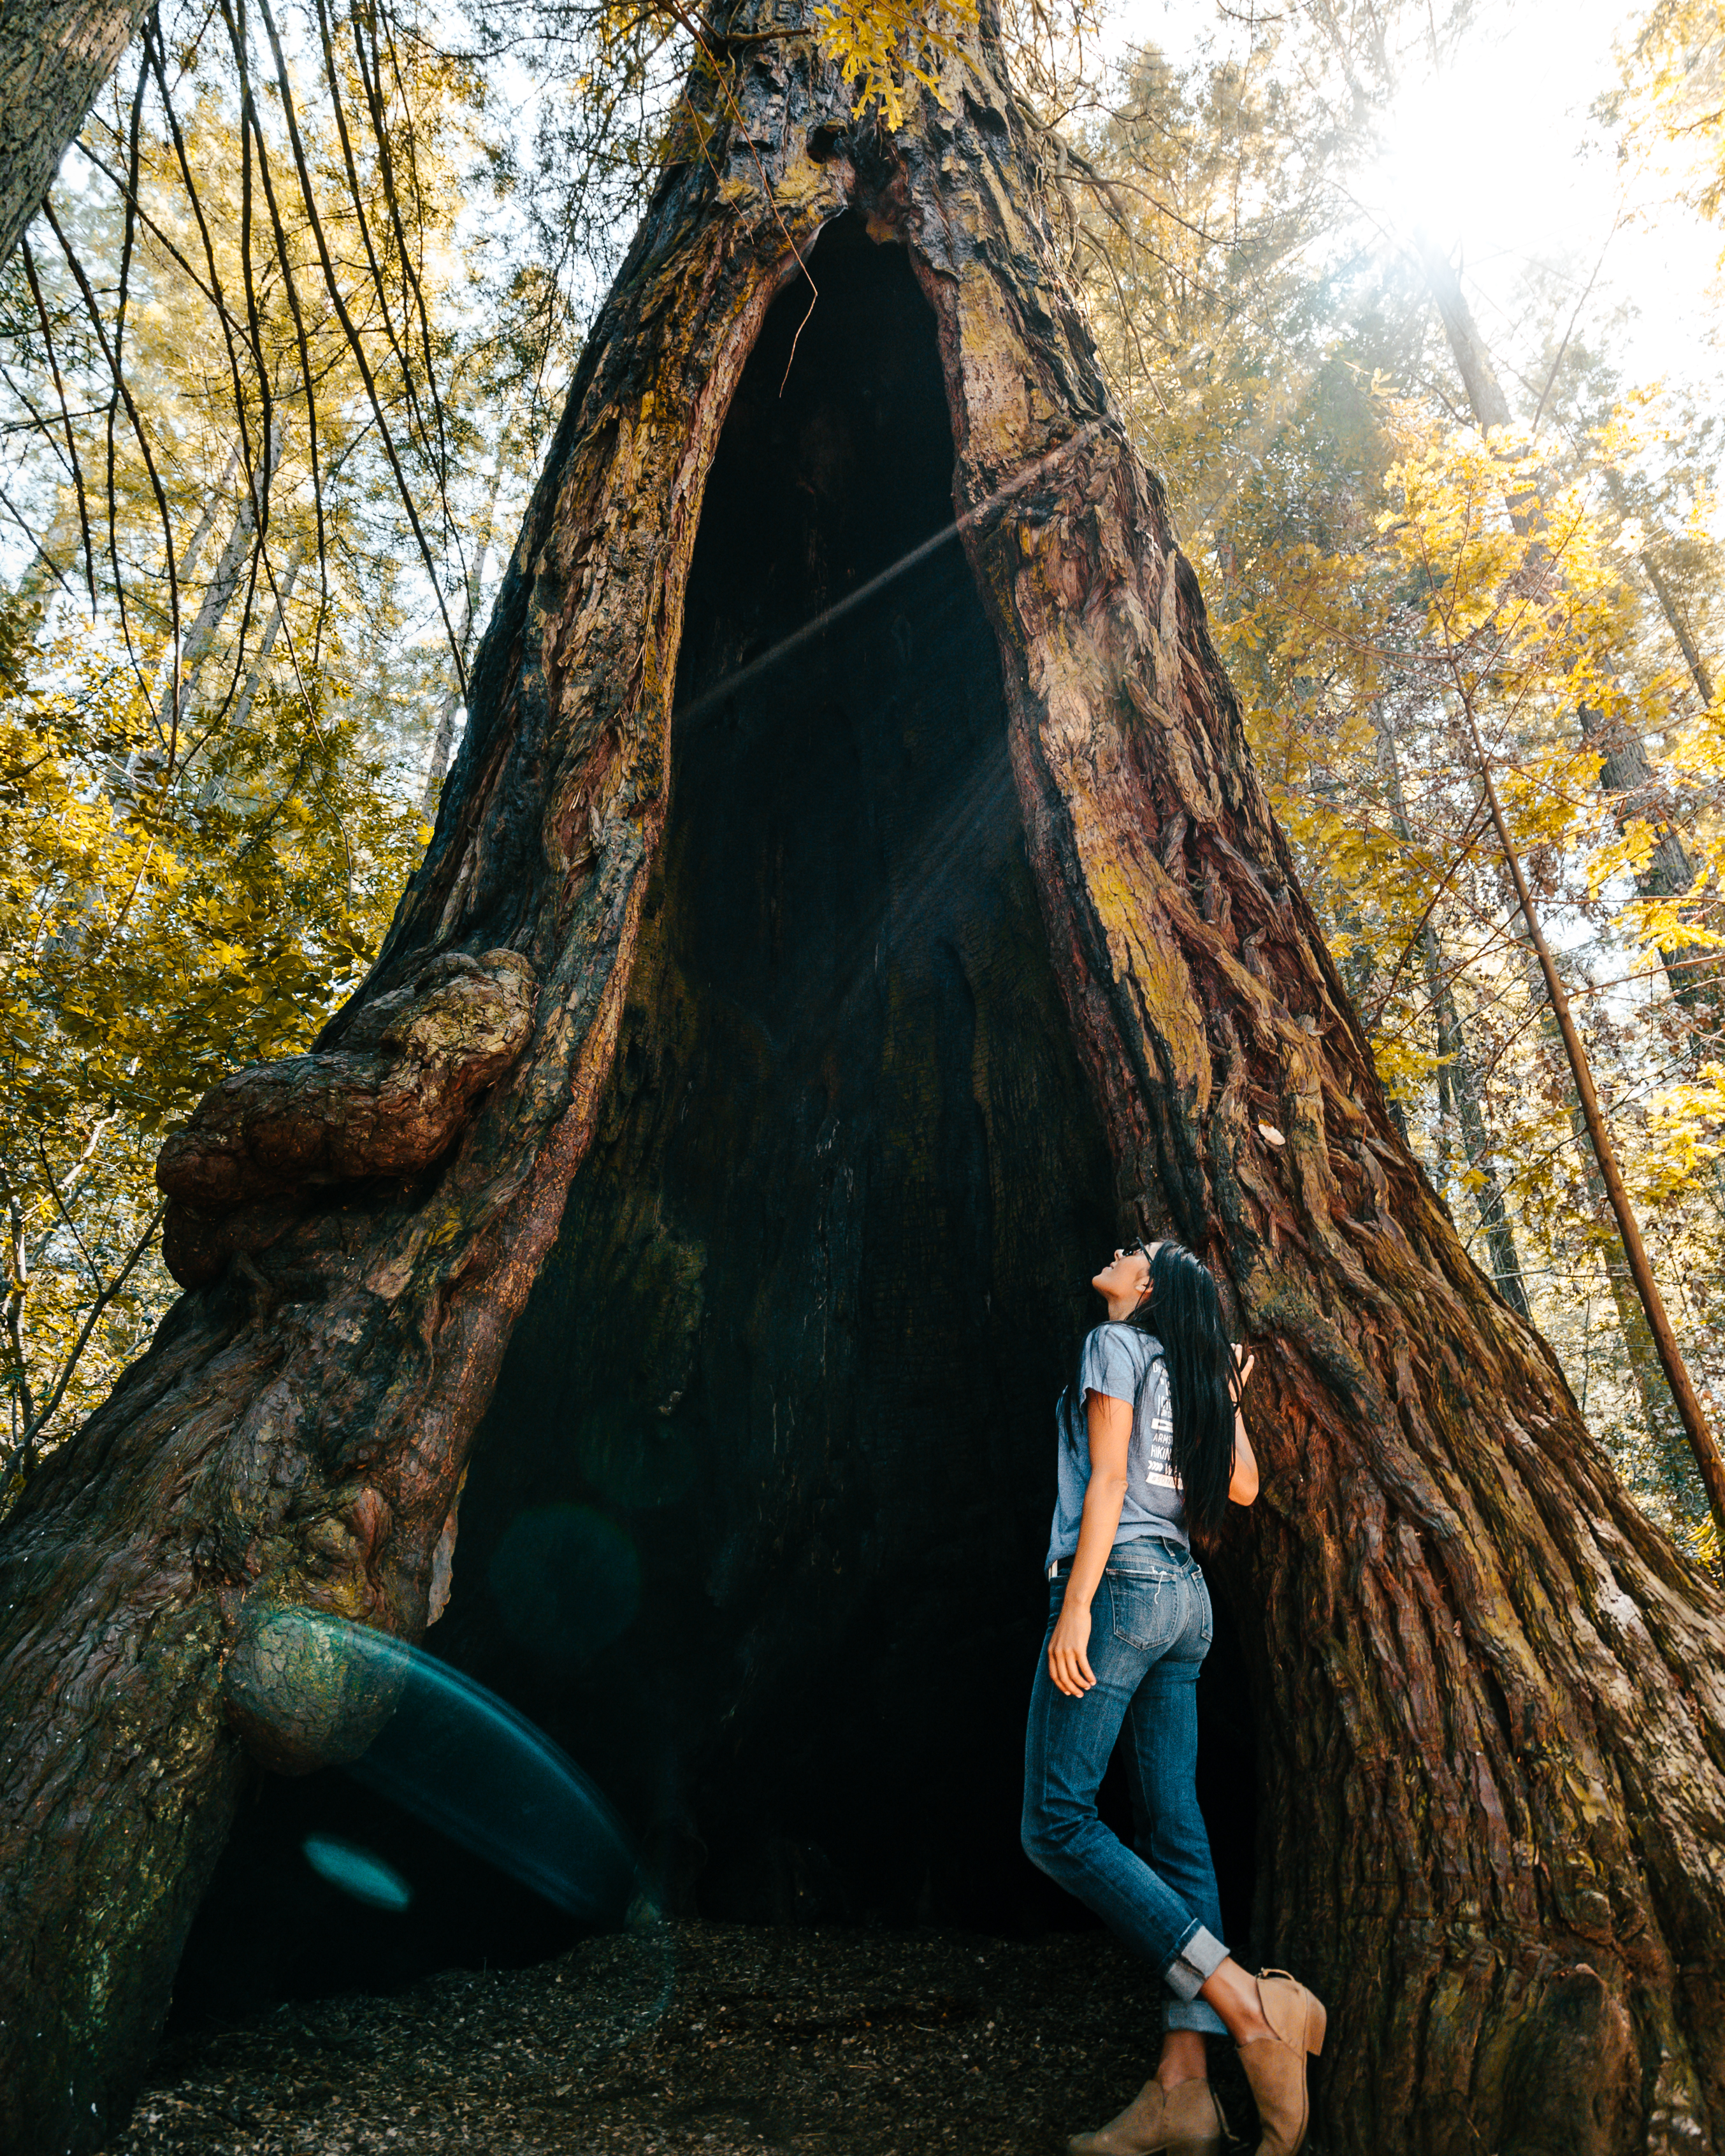 Forest Bathing in the redwoods of Grove of the Old Trees in Sonoma County, California